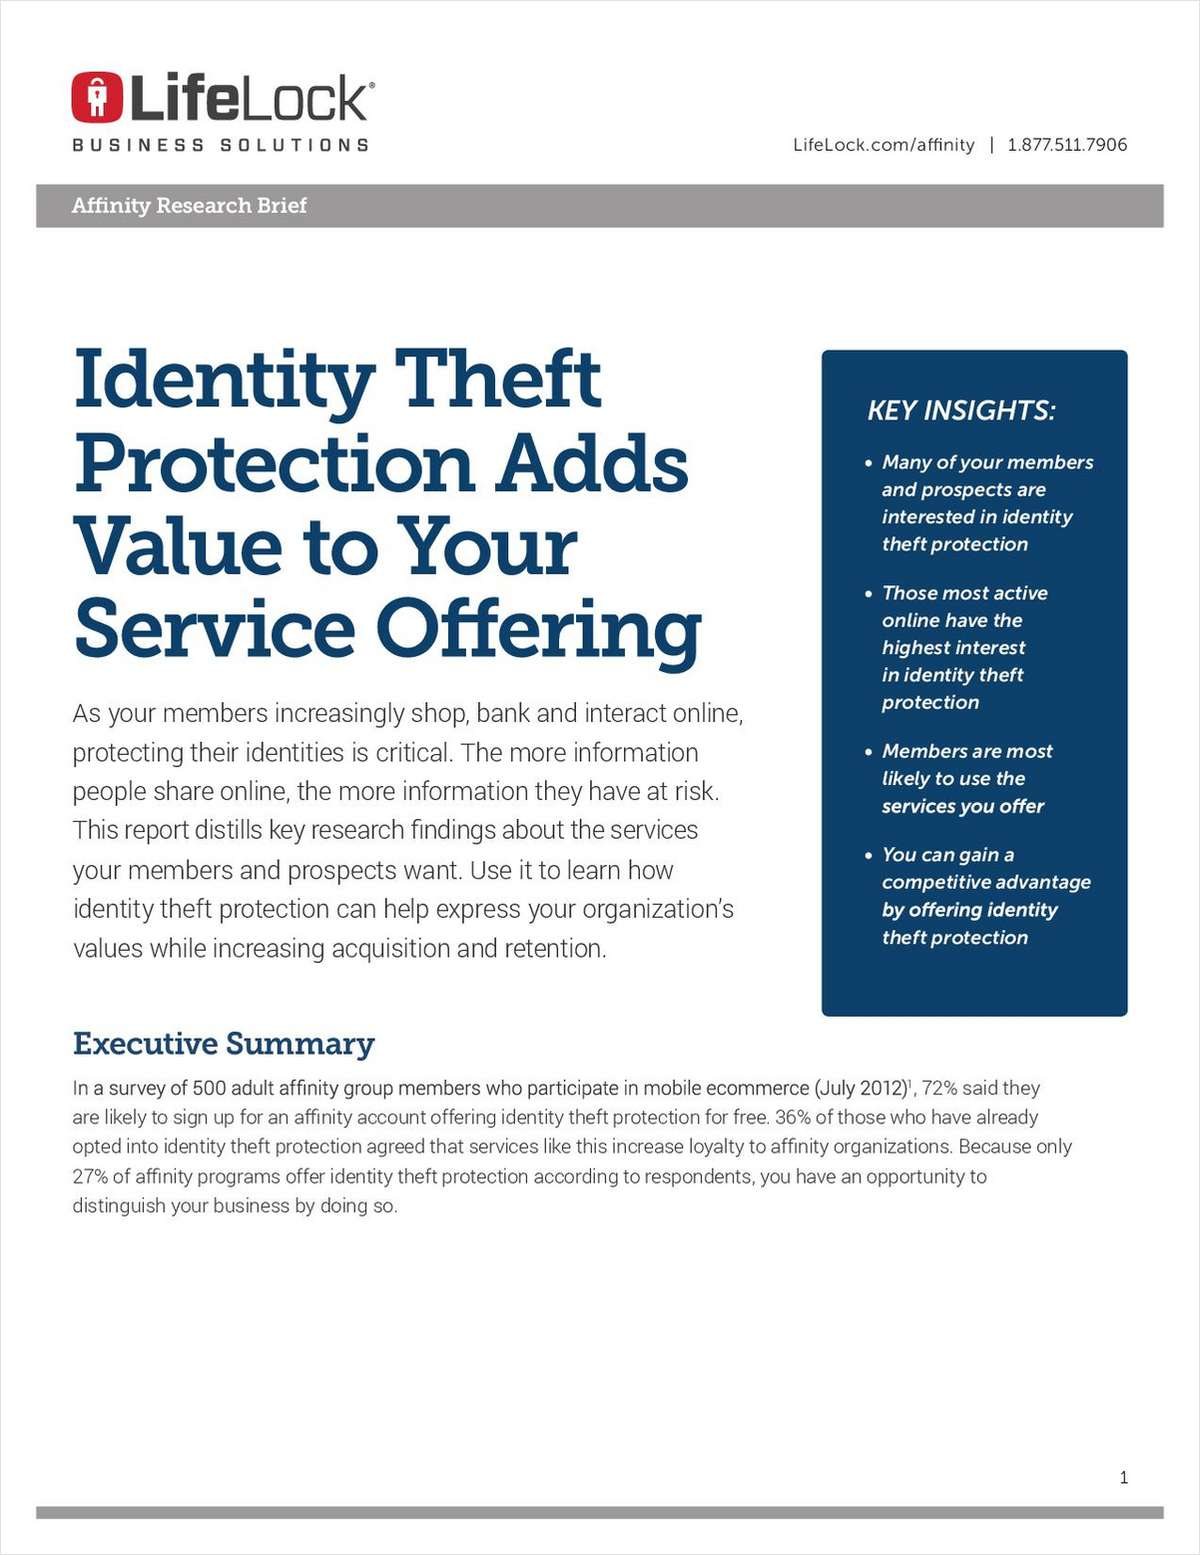 Adding Value Research Brief for Affinity Organizations